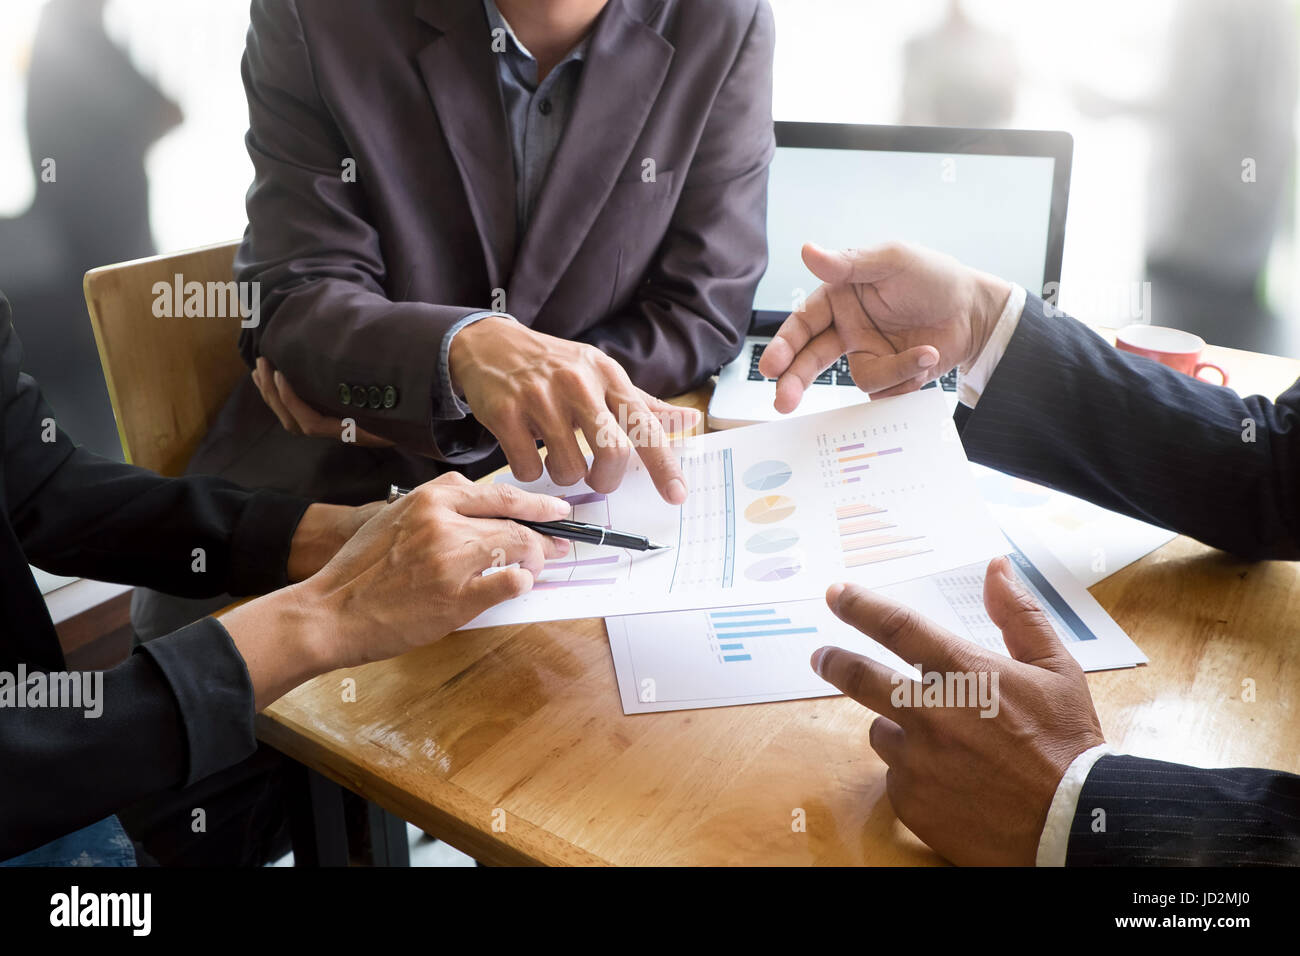 Close up business talking on desk with business presentation concept with vintage tone. - Stock Image